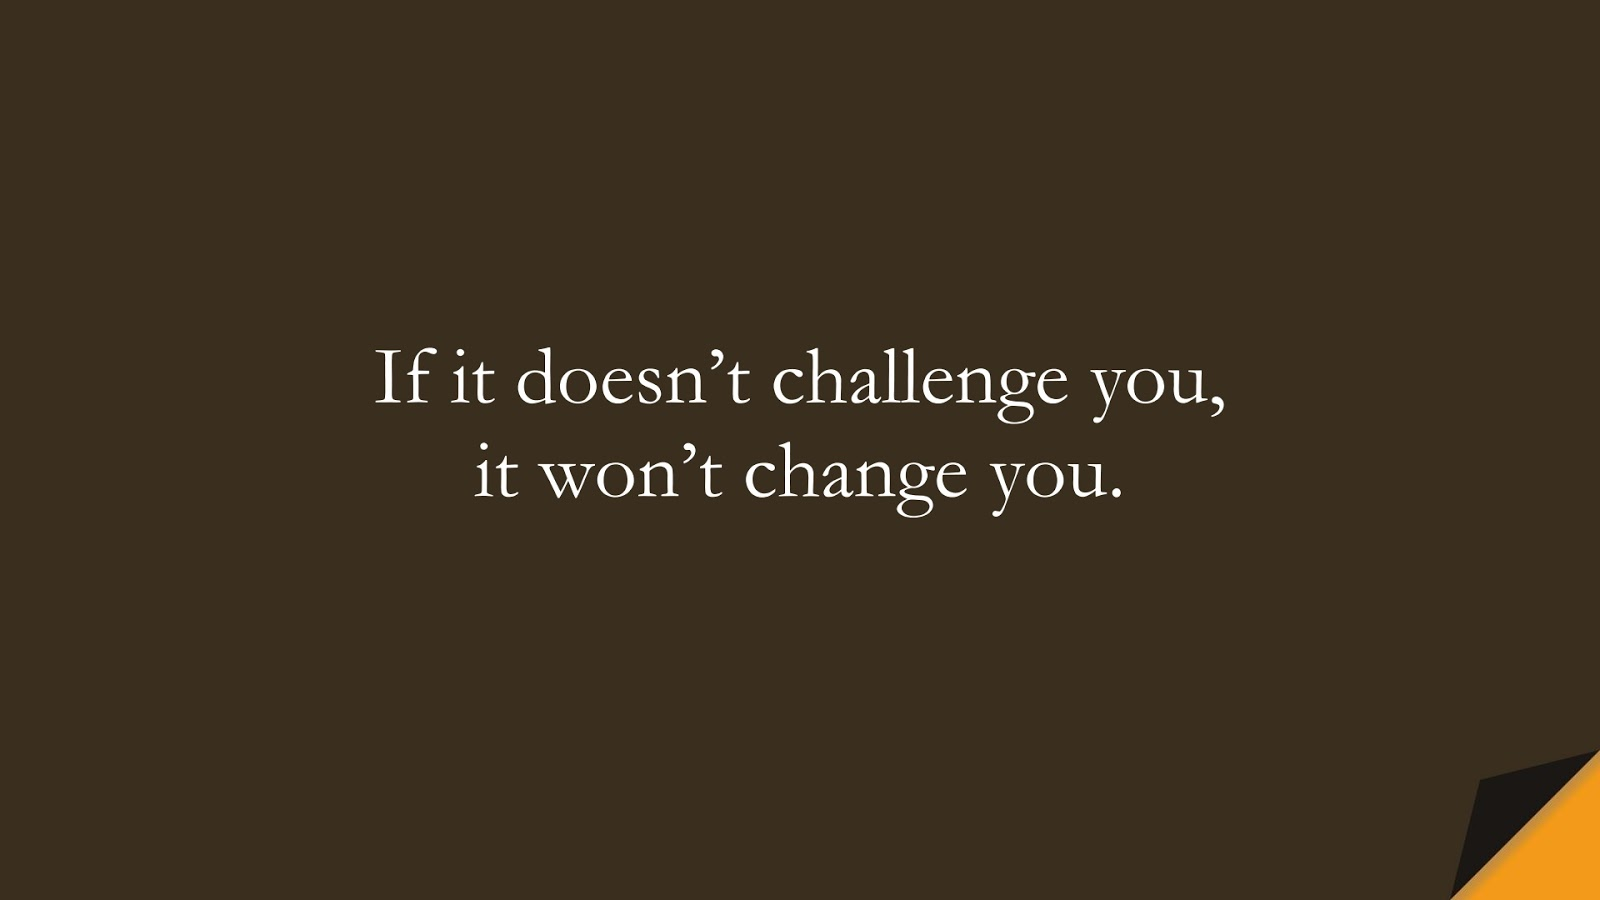 If it doesn't challenge you, it won't change you.FALSE